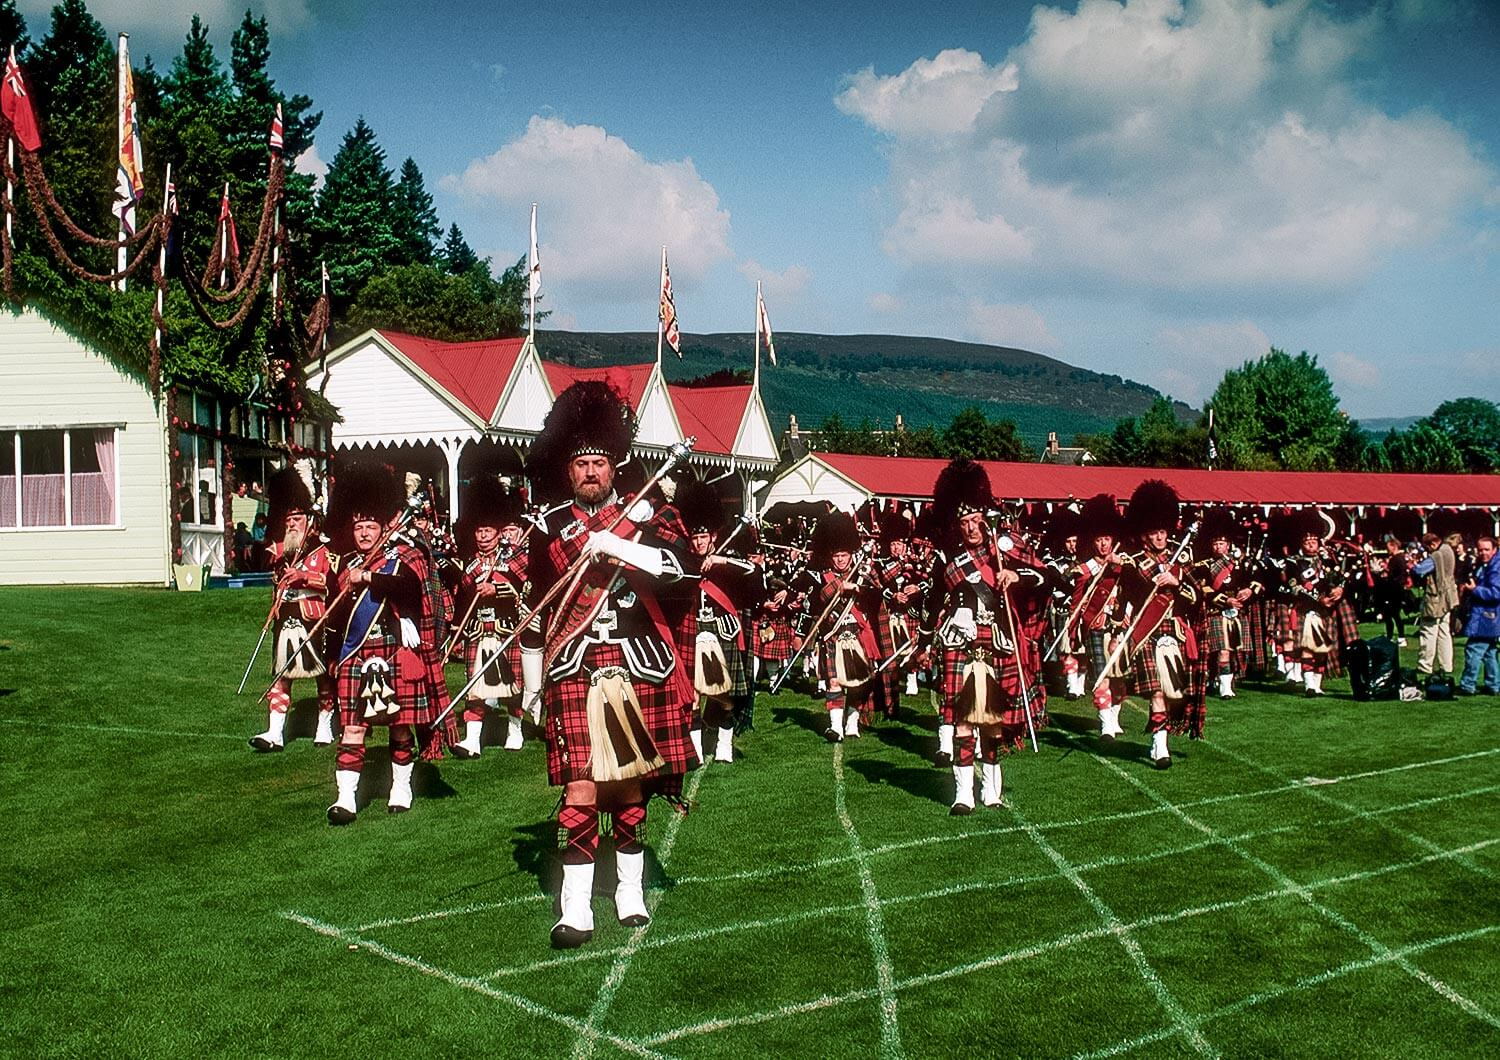 About Highland Games | Scotland is Now